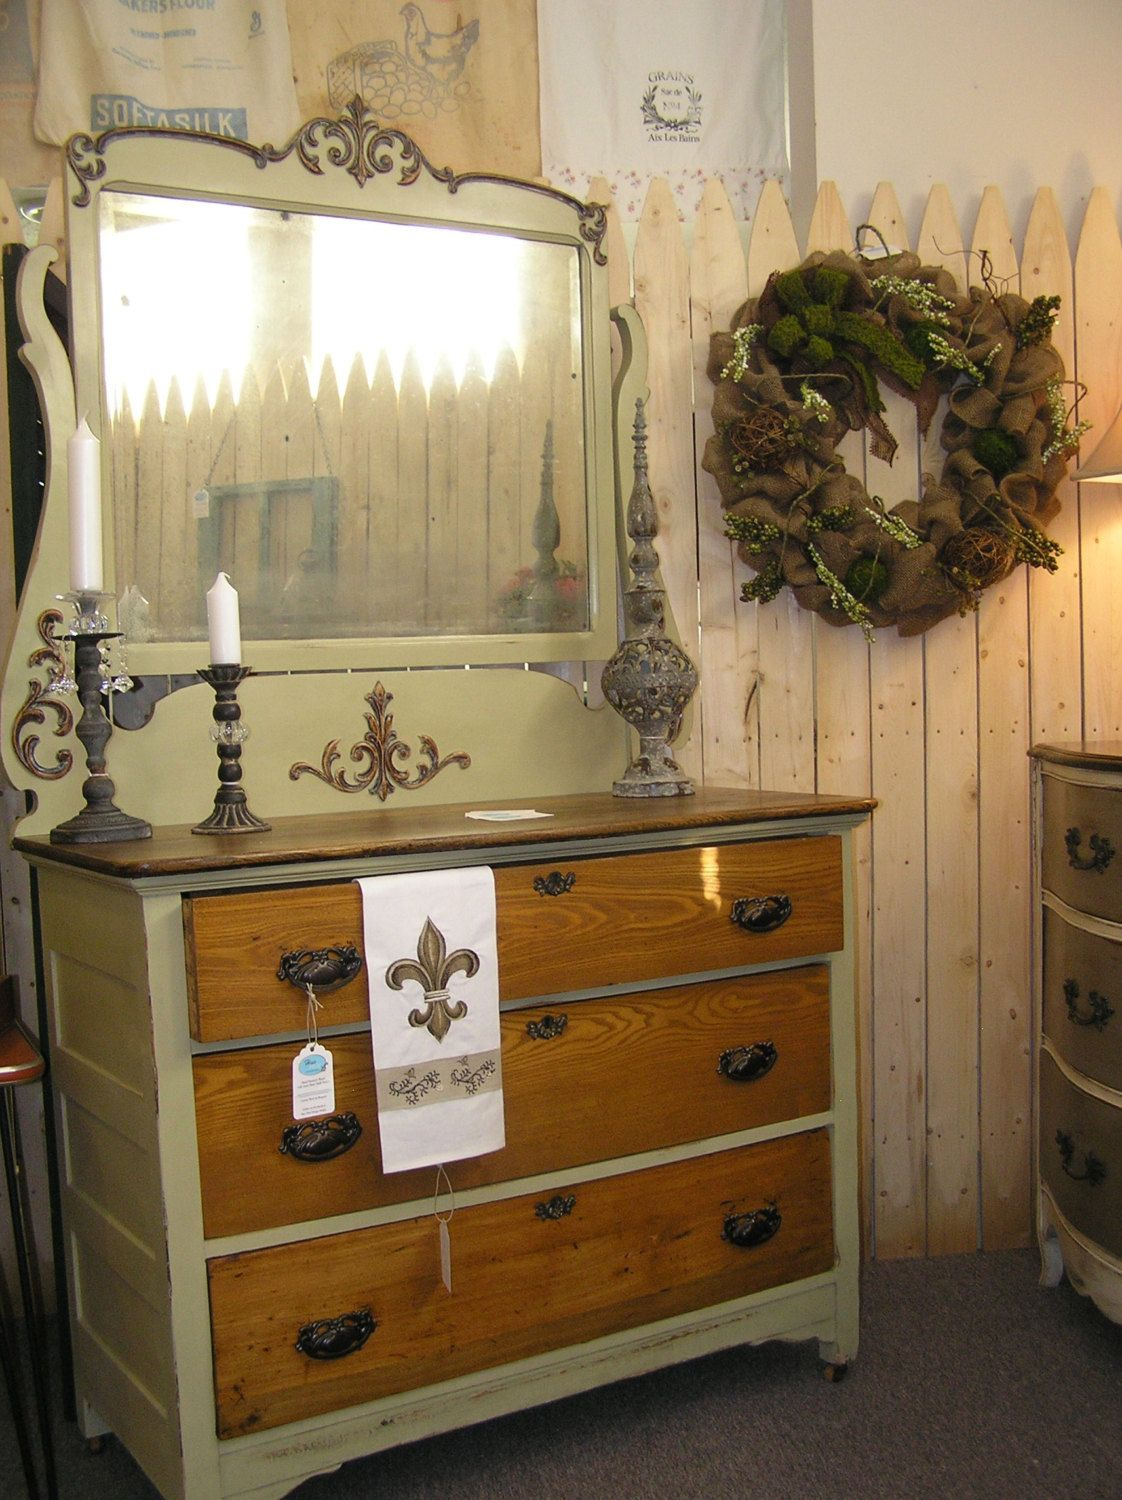 Hue New Painted Furniture Antique Dresser With Mirror Hand Waxed Annie Sloan Chalk Paint In Versailles A Light Sage Green